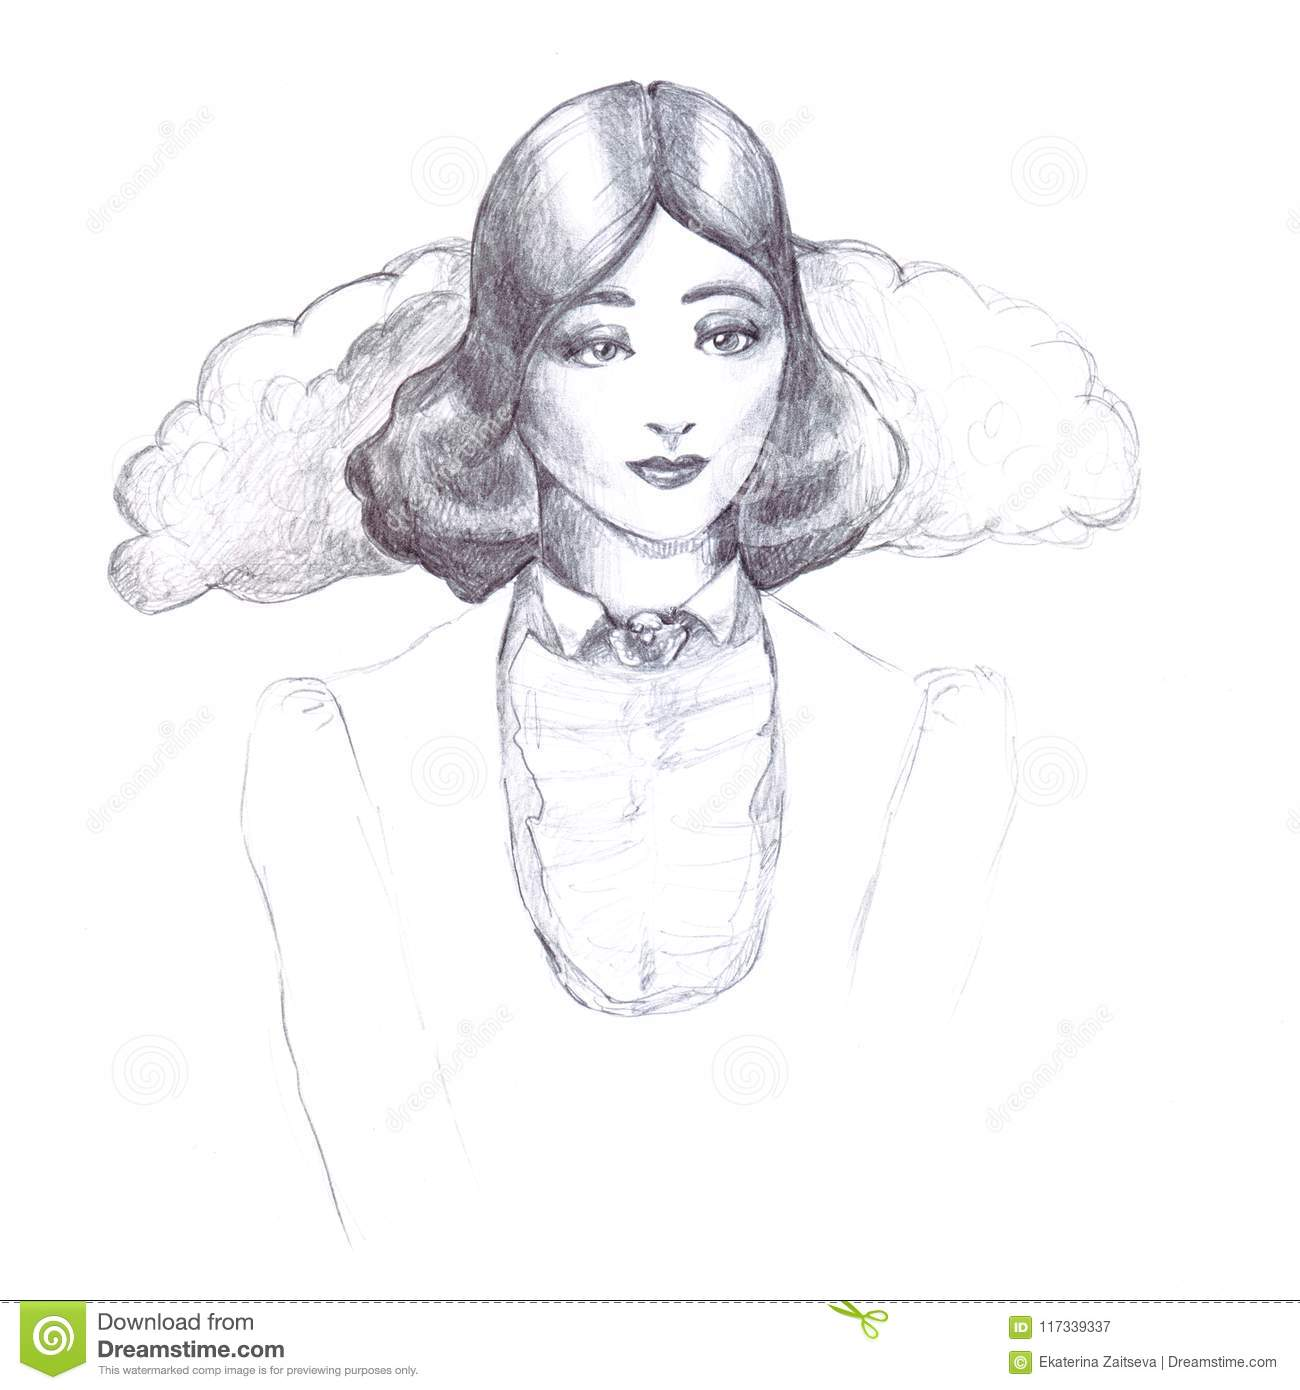 Girl retro vintage pencil sketch outline old fashioned collar flounce jacket hairstyle thirties on a white background line illustration drawing